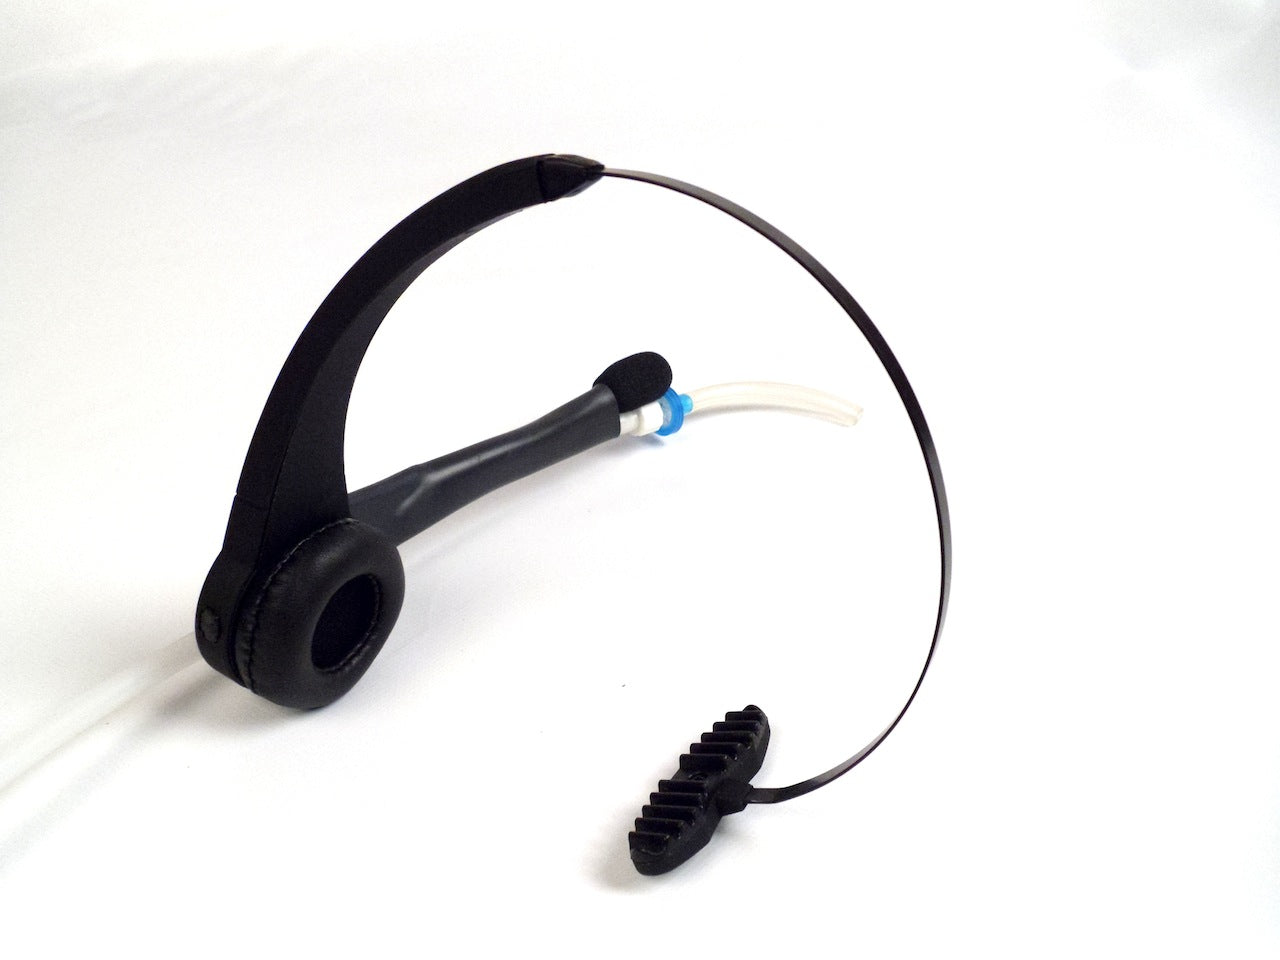 Wireless Bluetooth Sip-n-Puff Headset for PlayStation 3/4, PC, Android - Broadened Horizons Direct